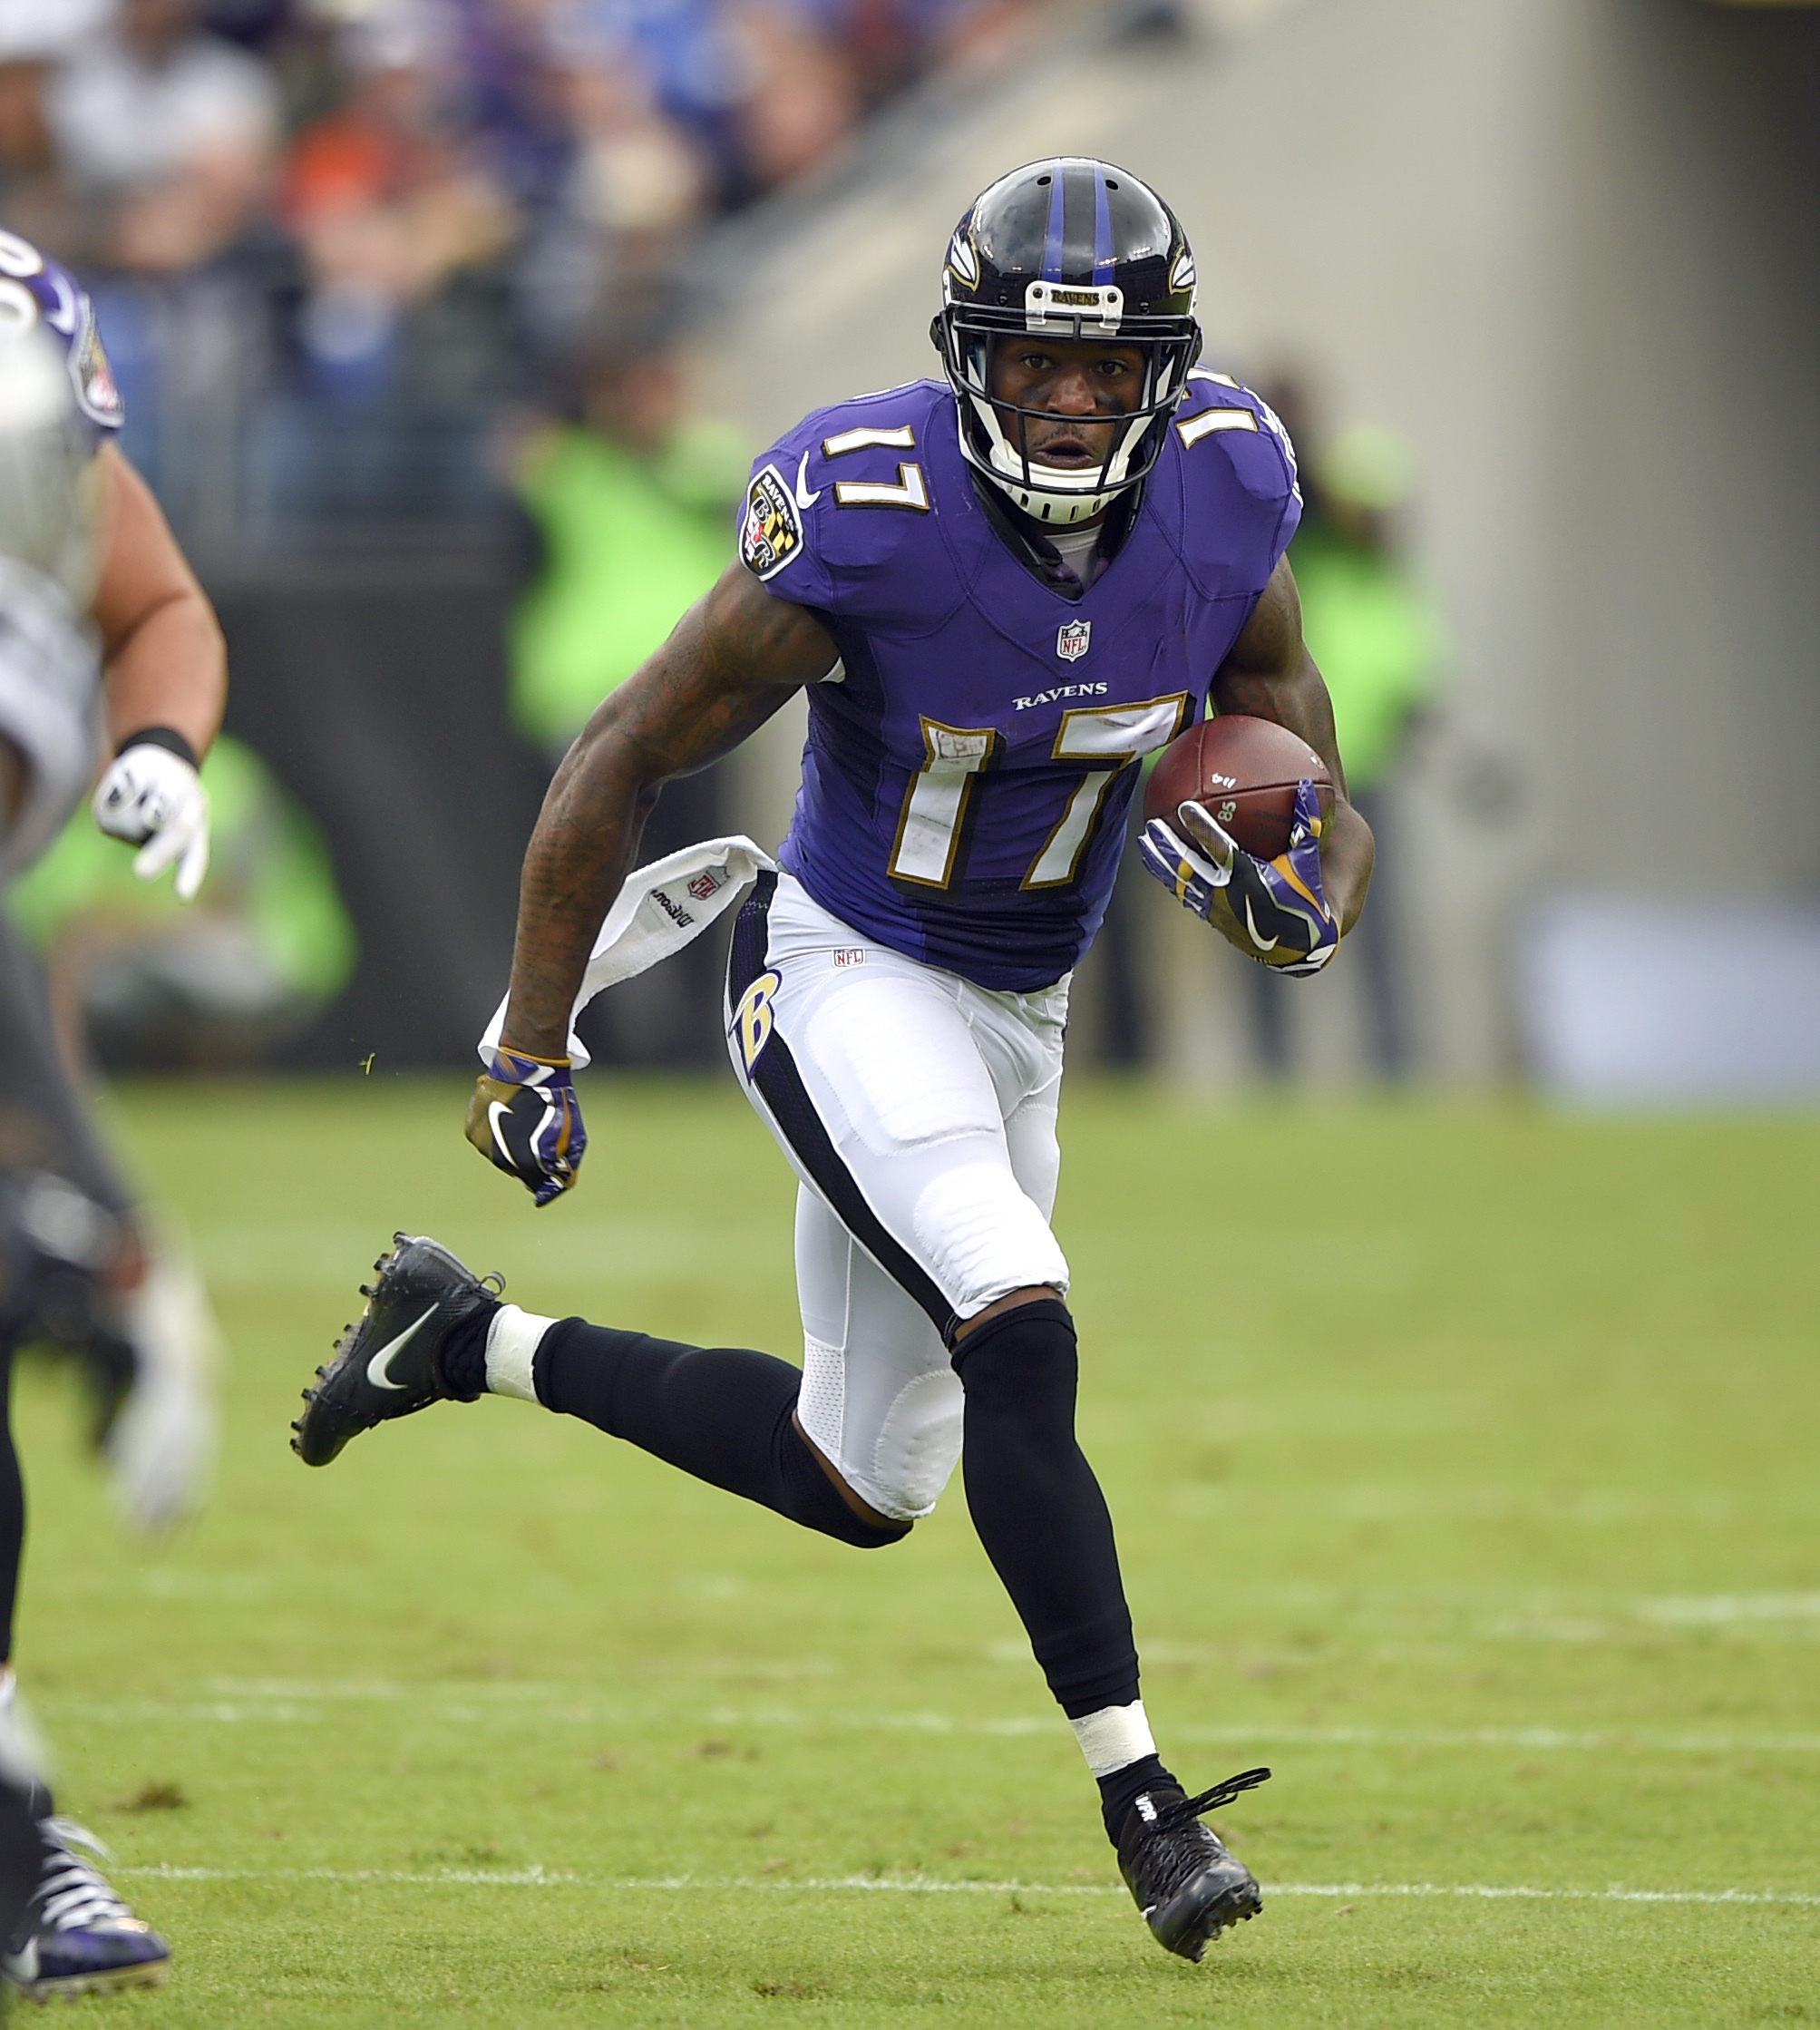 FILE - In this Oct. 2, 2016, file photo, Baltimore Ravens wide receiver Mike Wallace rushes the ball in the first half of an NFL football game against the Oakland Raiders, in Baltimore. As a member of the Pittsburgh Steelers, Mike Wallace grew to despise